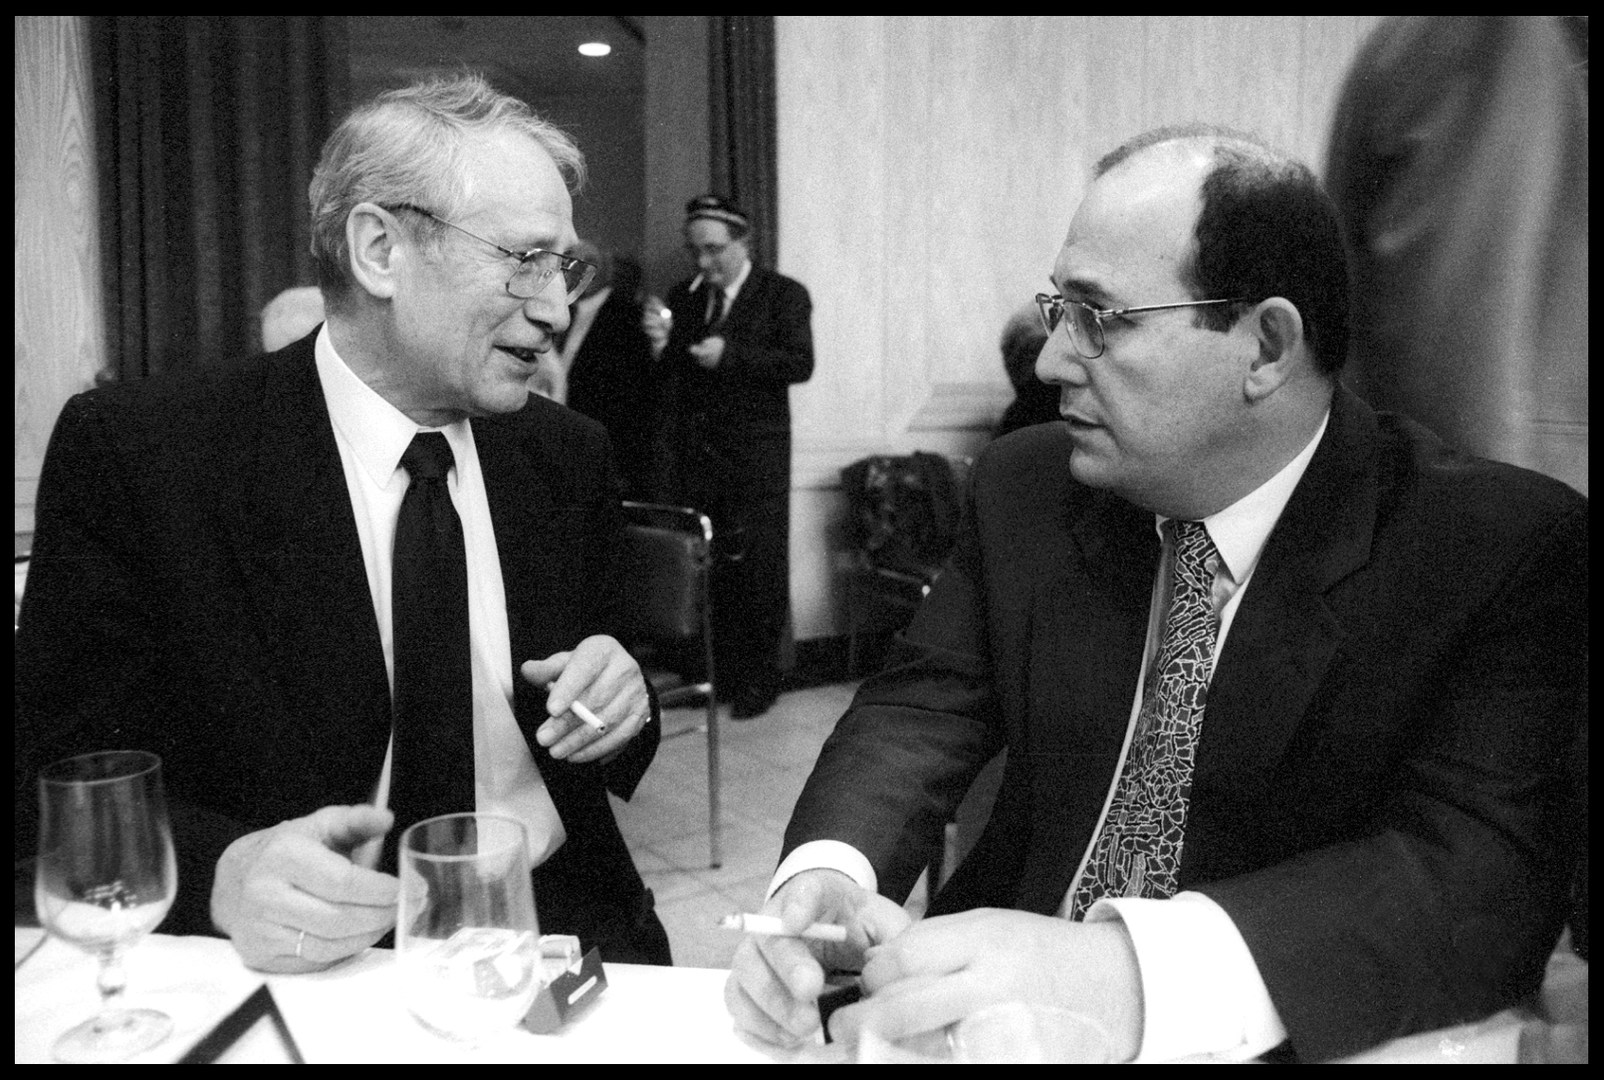 Markus Wolf, left, former head of GDR's external spying agency, at a conference in Berlin. December, 1990.